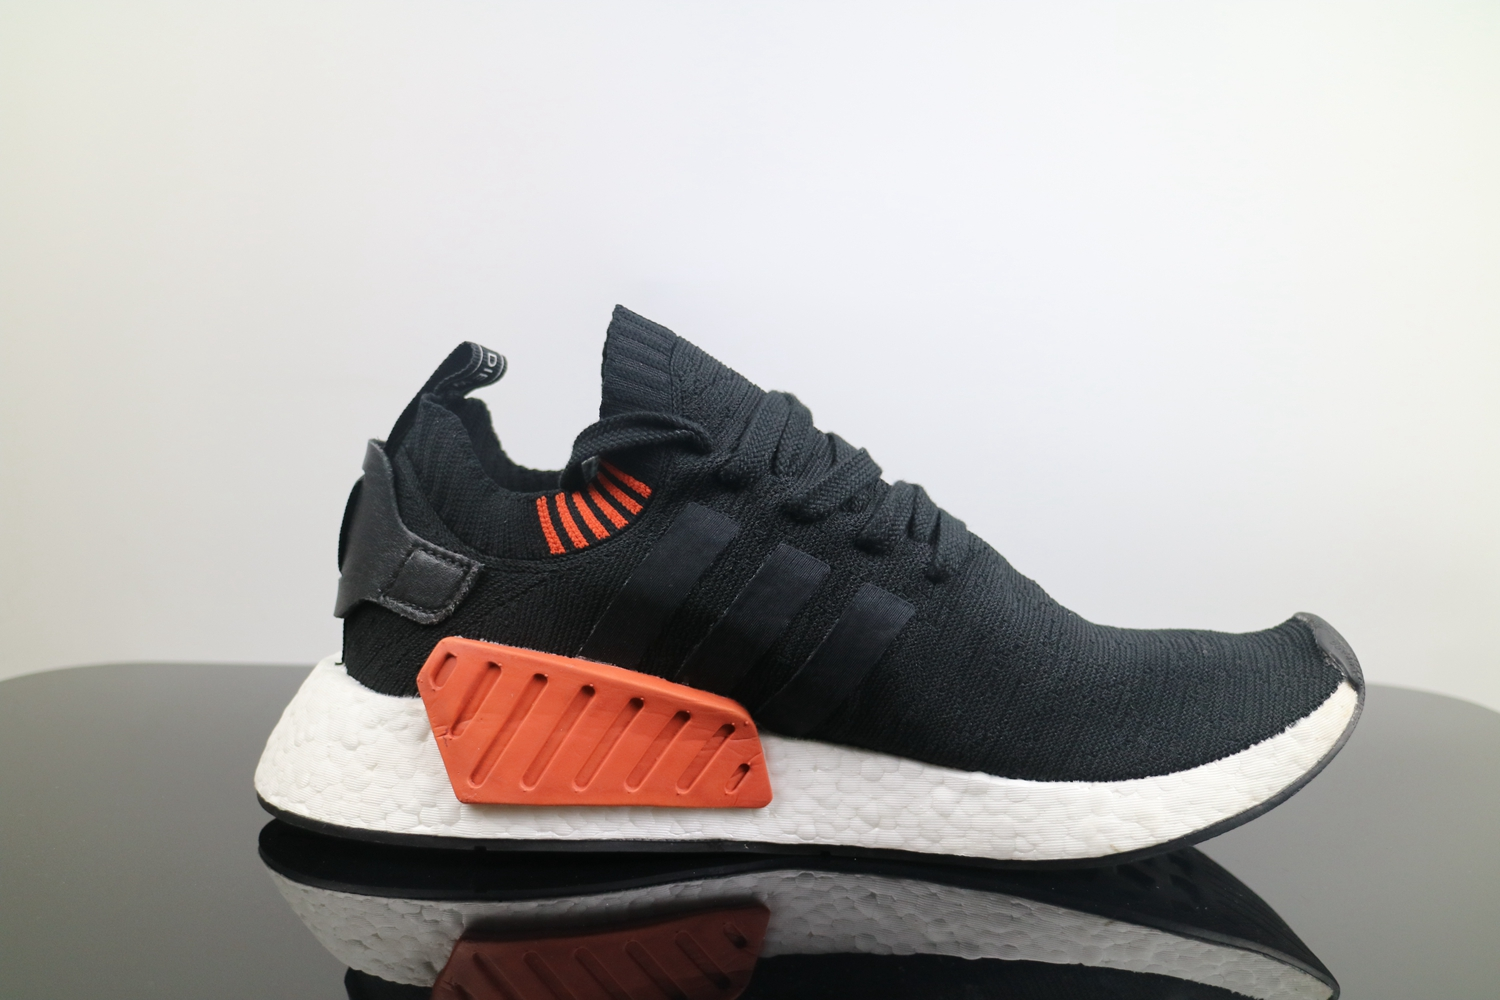 sports shoes 9be75 3ed9f Adidas NMD R2 Black White Red BB6859